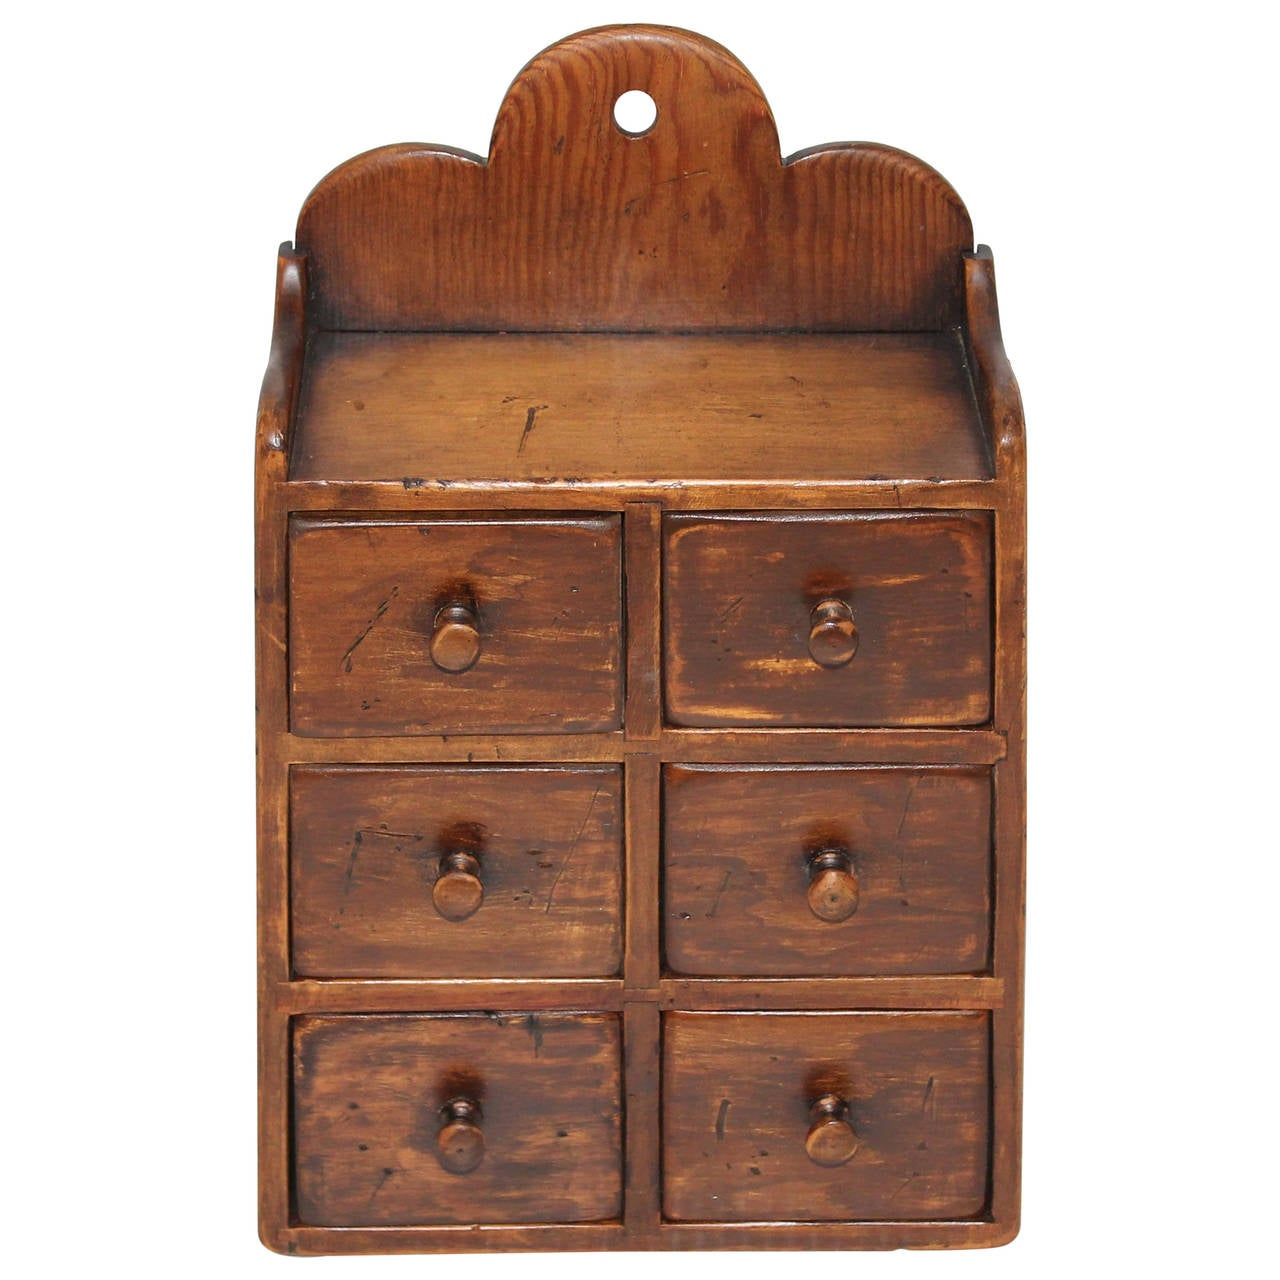 19th Century Pine Six-Drawer Hanging Spice Cabinet For Sale at 1stdibs